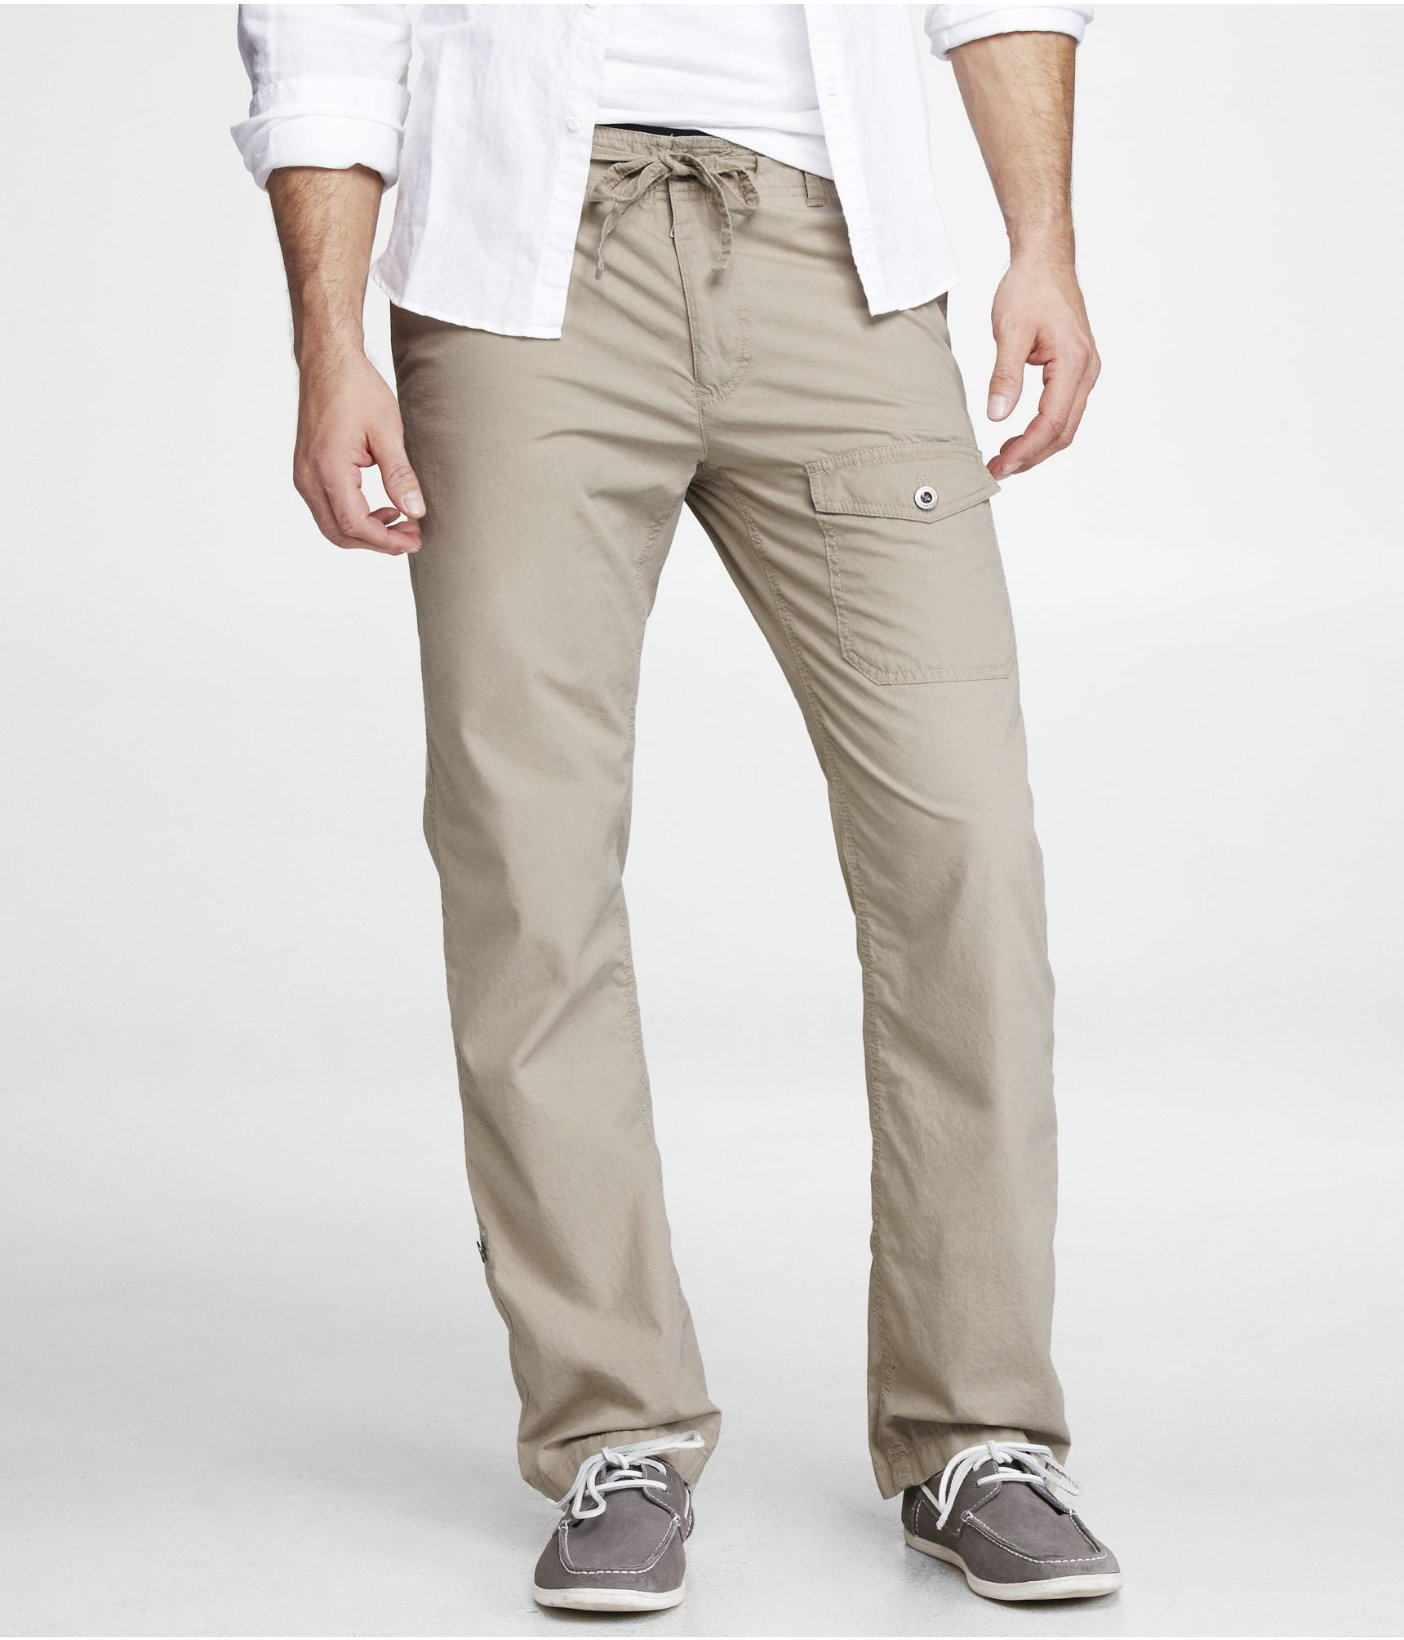 Mens Drawstring Khaki Pants 8